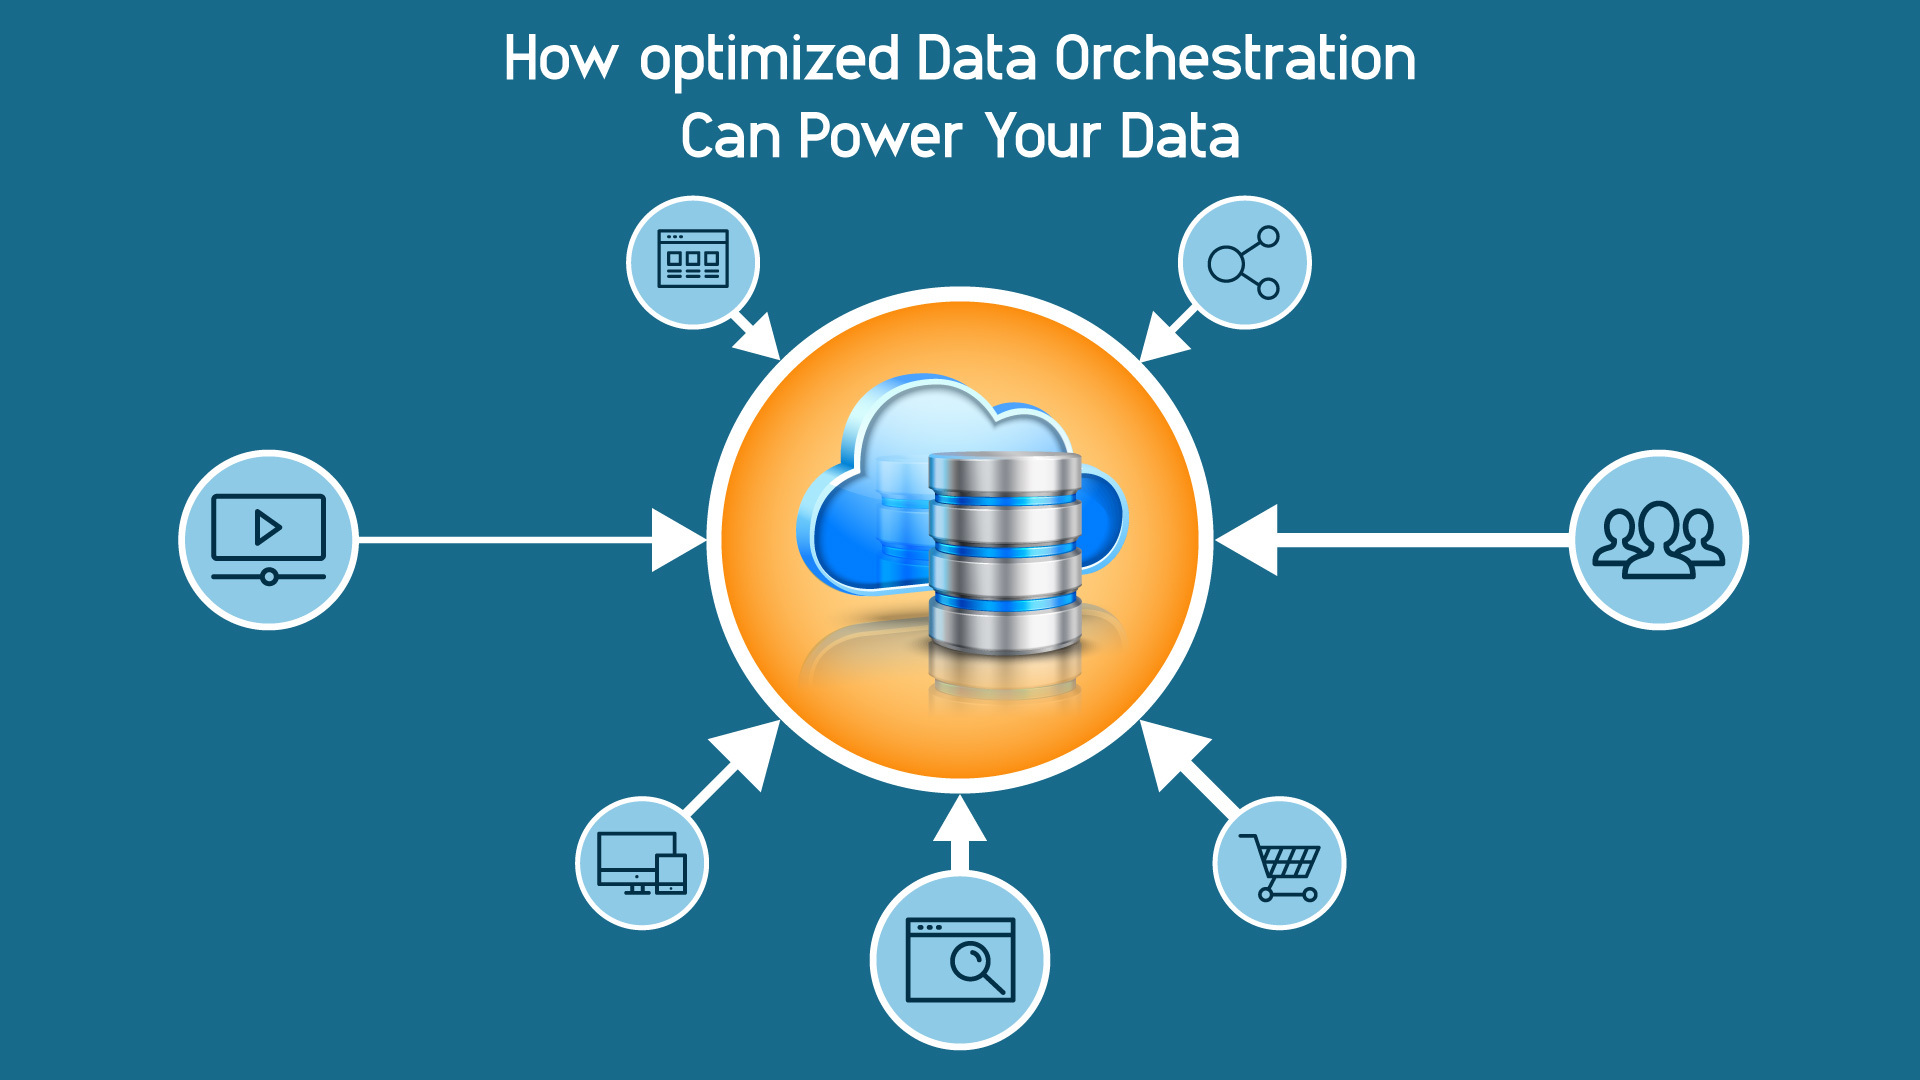 How optimized Data Orchestration Can Power Your Data